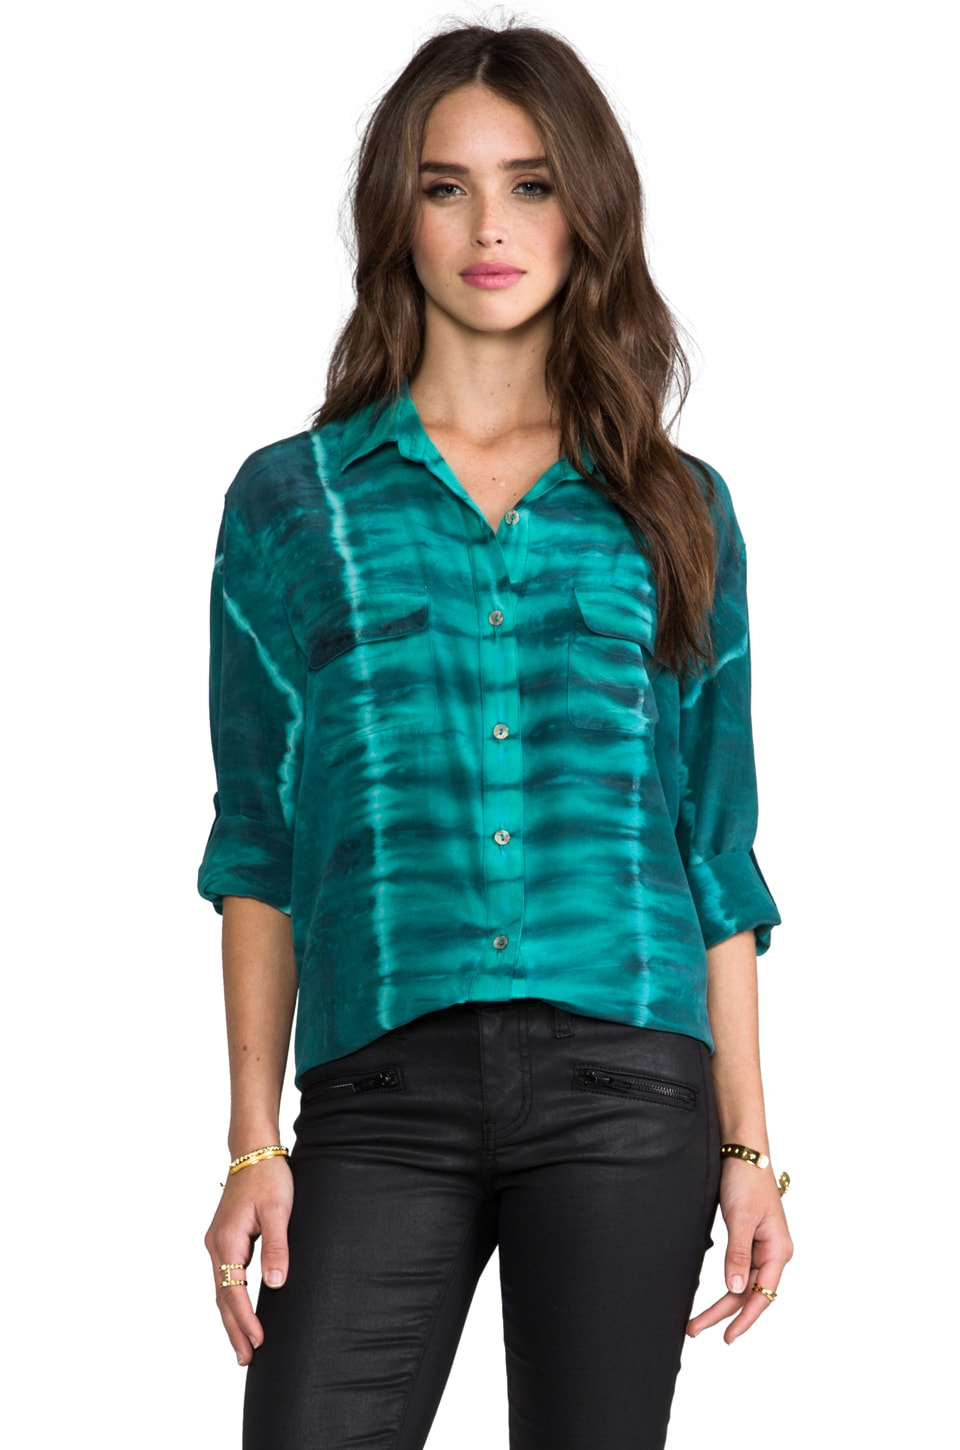 Gypsy 05 Silk Button Down with Pockets in Teal